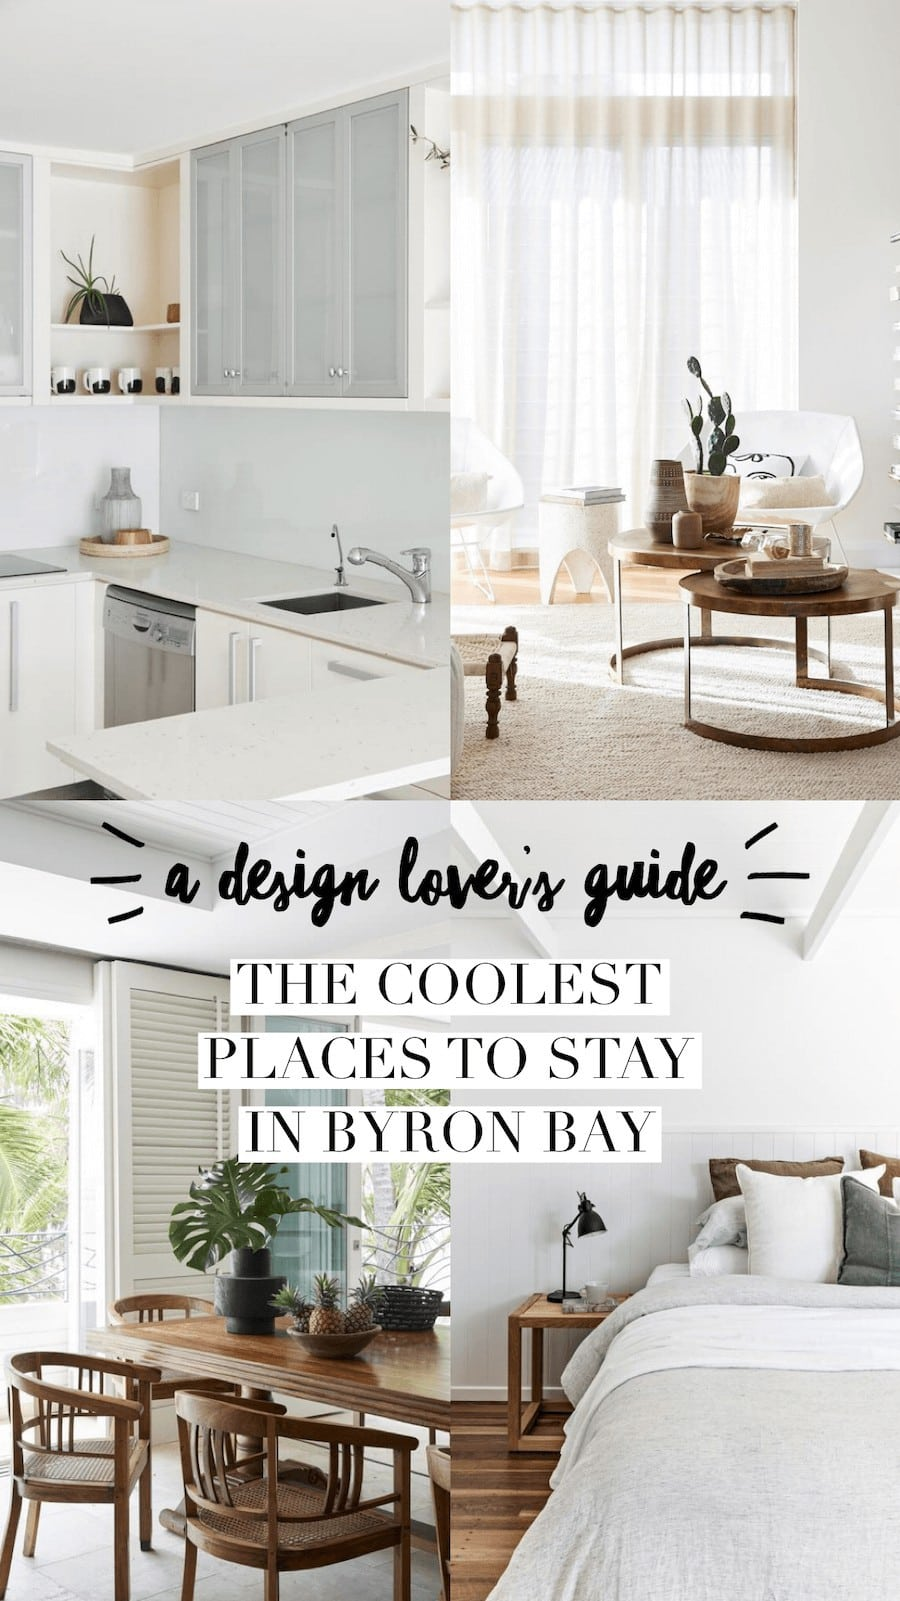 Best places to stay in Byron Bay